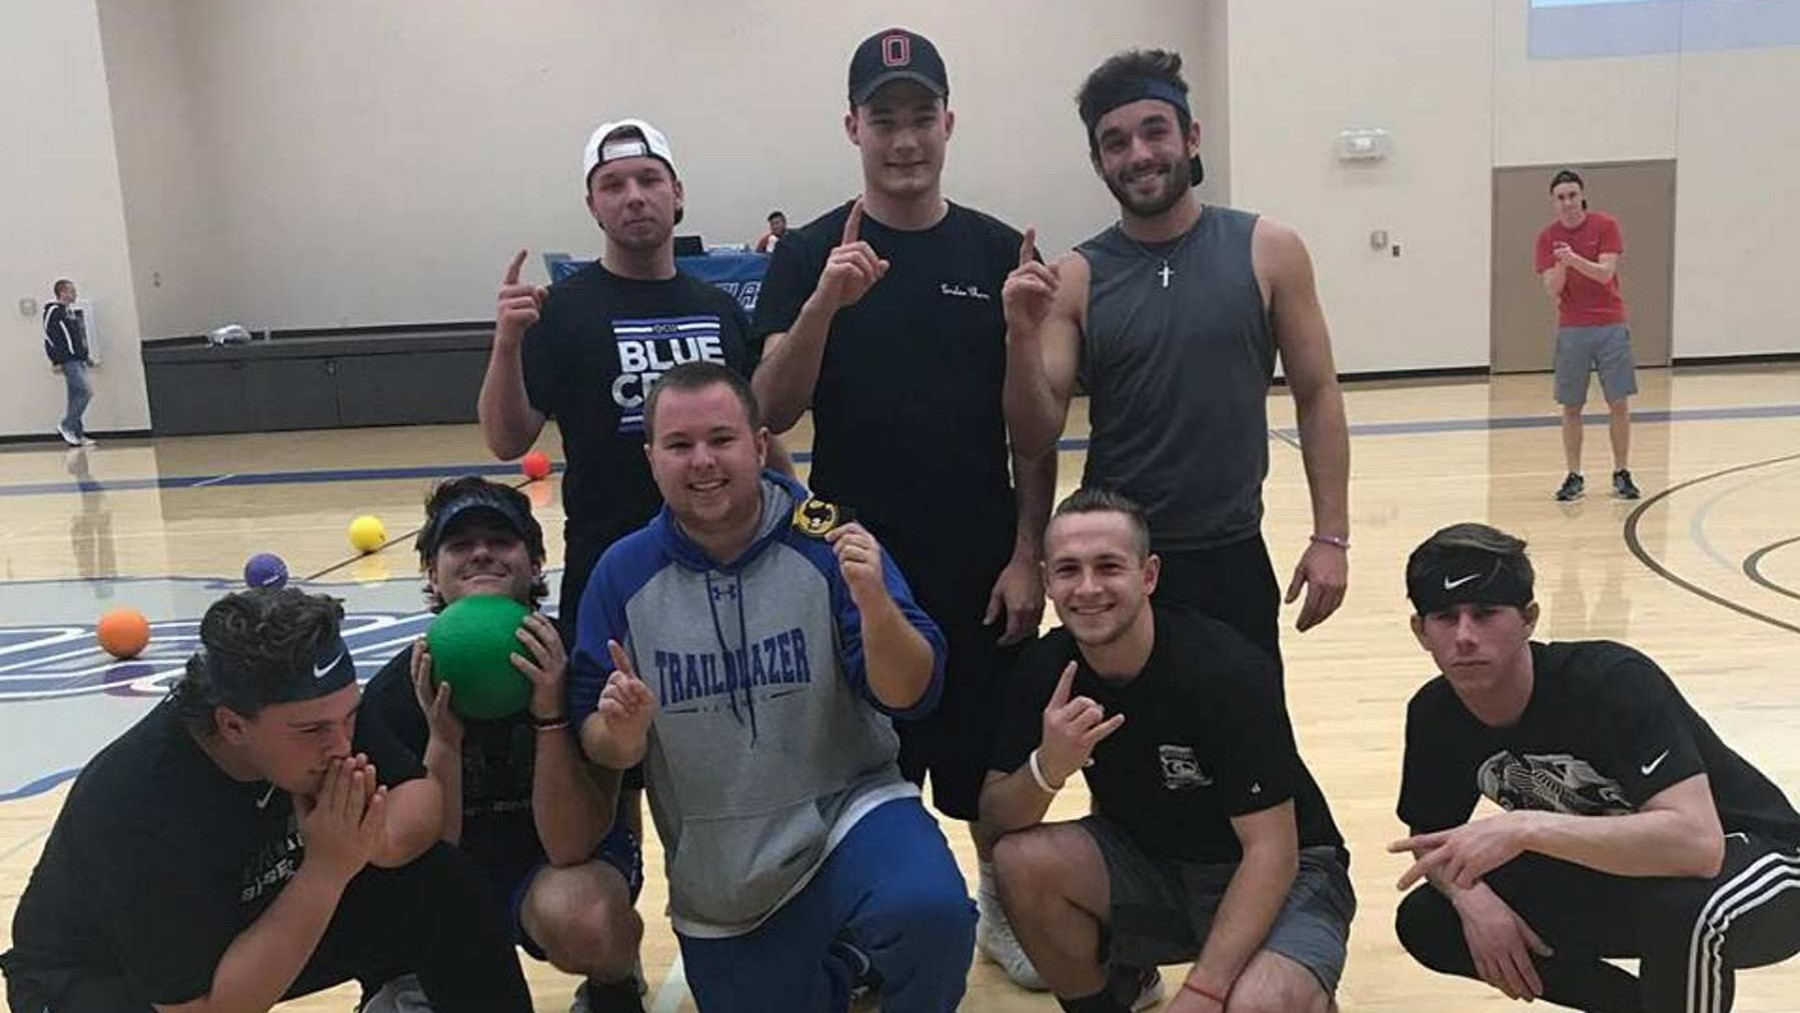 Sportlinc Hosts Dodgeball Tournament At OCU image